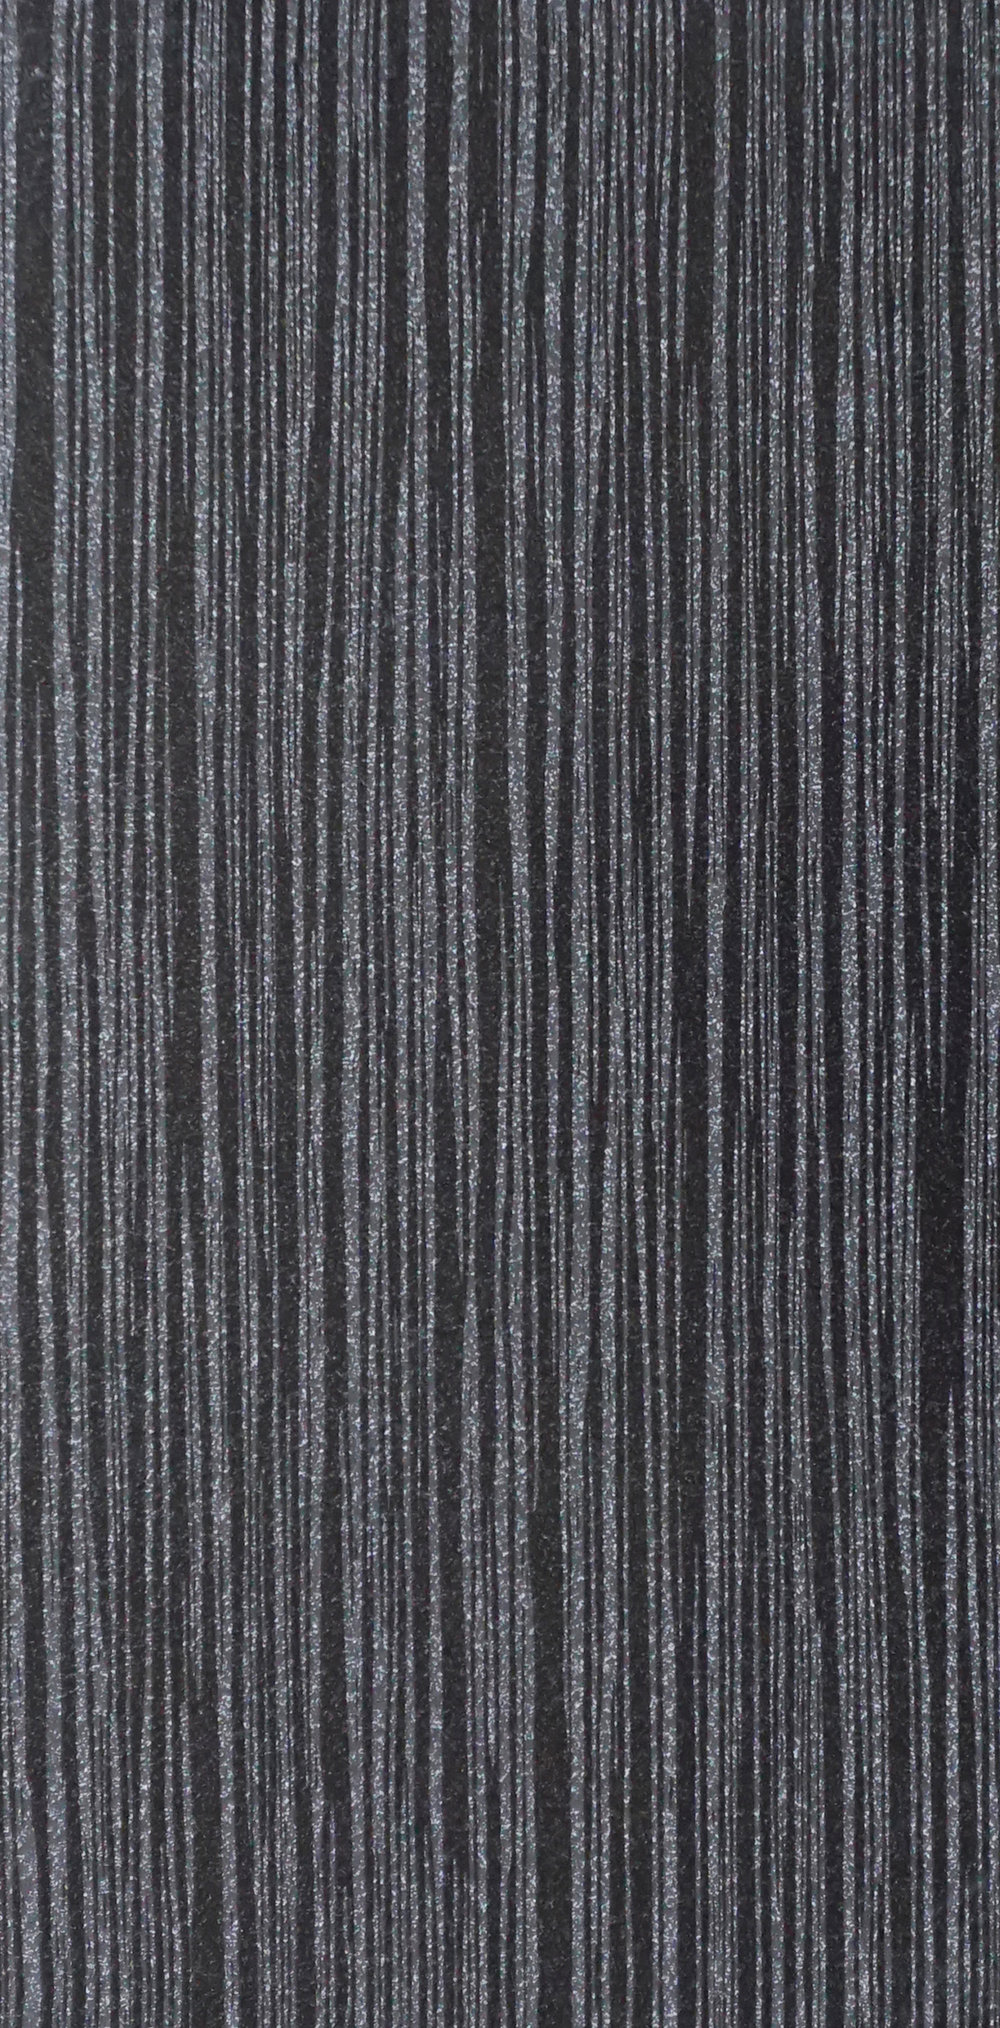 "CASCADE BLACK 12""X24"" - GLAZED PORCELAIN 8 PC/CTN (15.5 SF); 40 CTN/PLT"